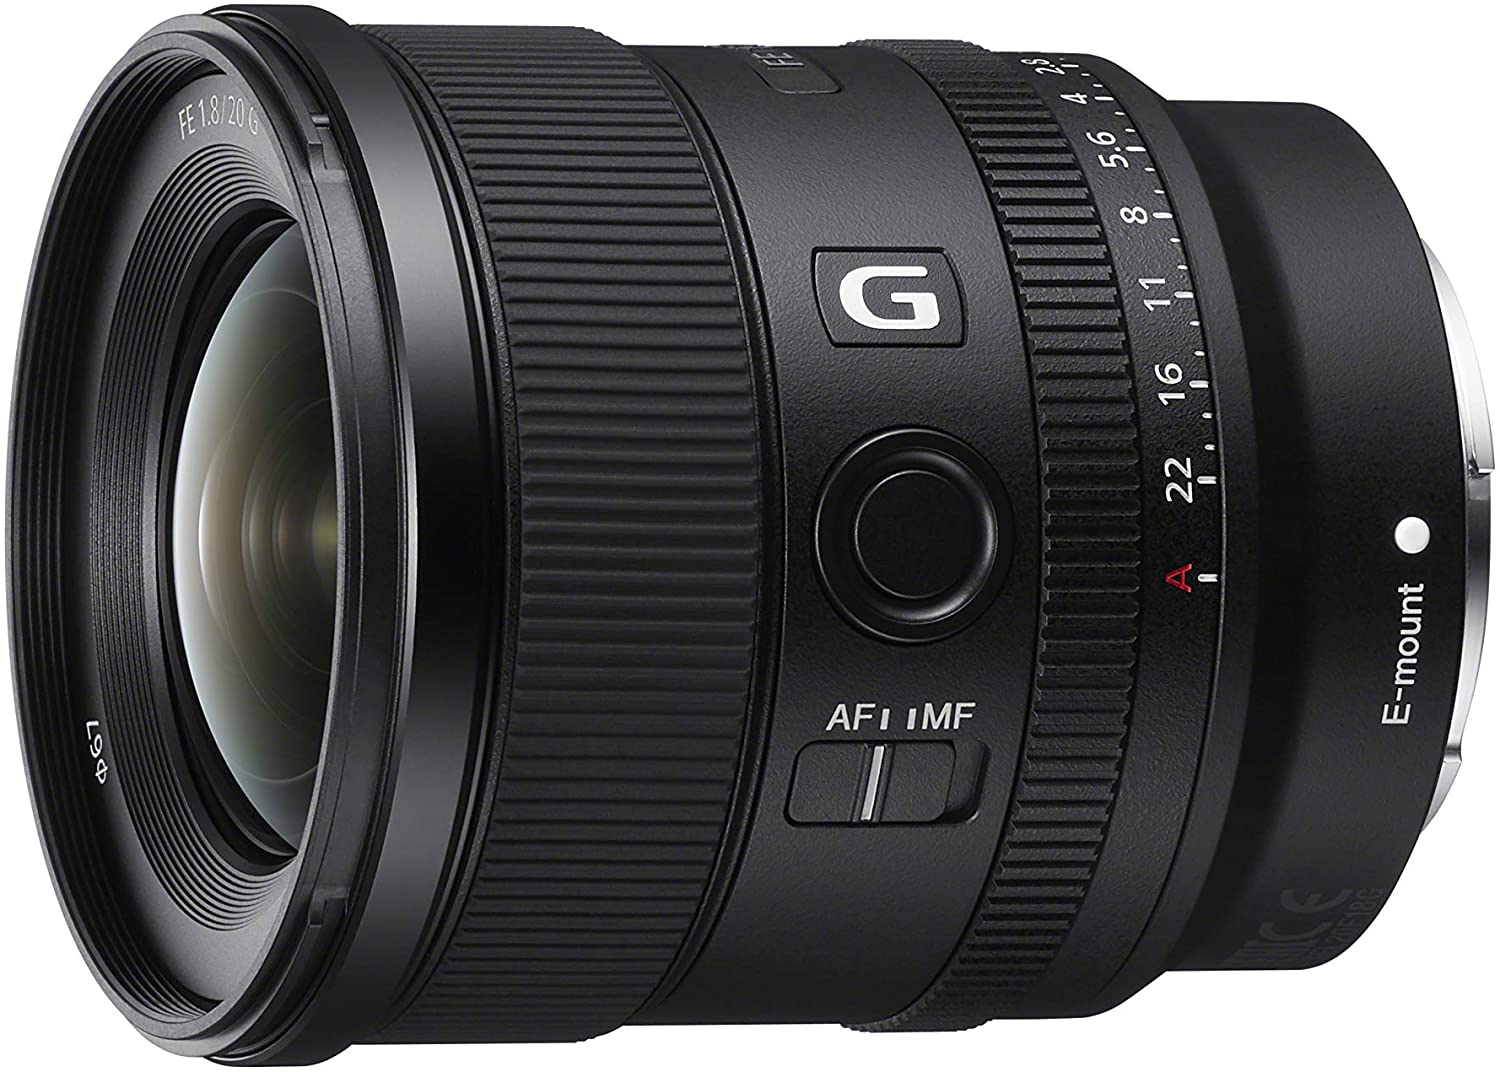 Amazon Opens Pre-Orders For Sony FE 20mm F1.8 G Full-Frame Large-Aperture Ultra-Wide Angle G Lens